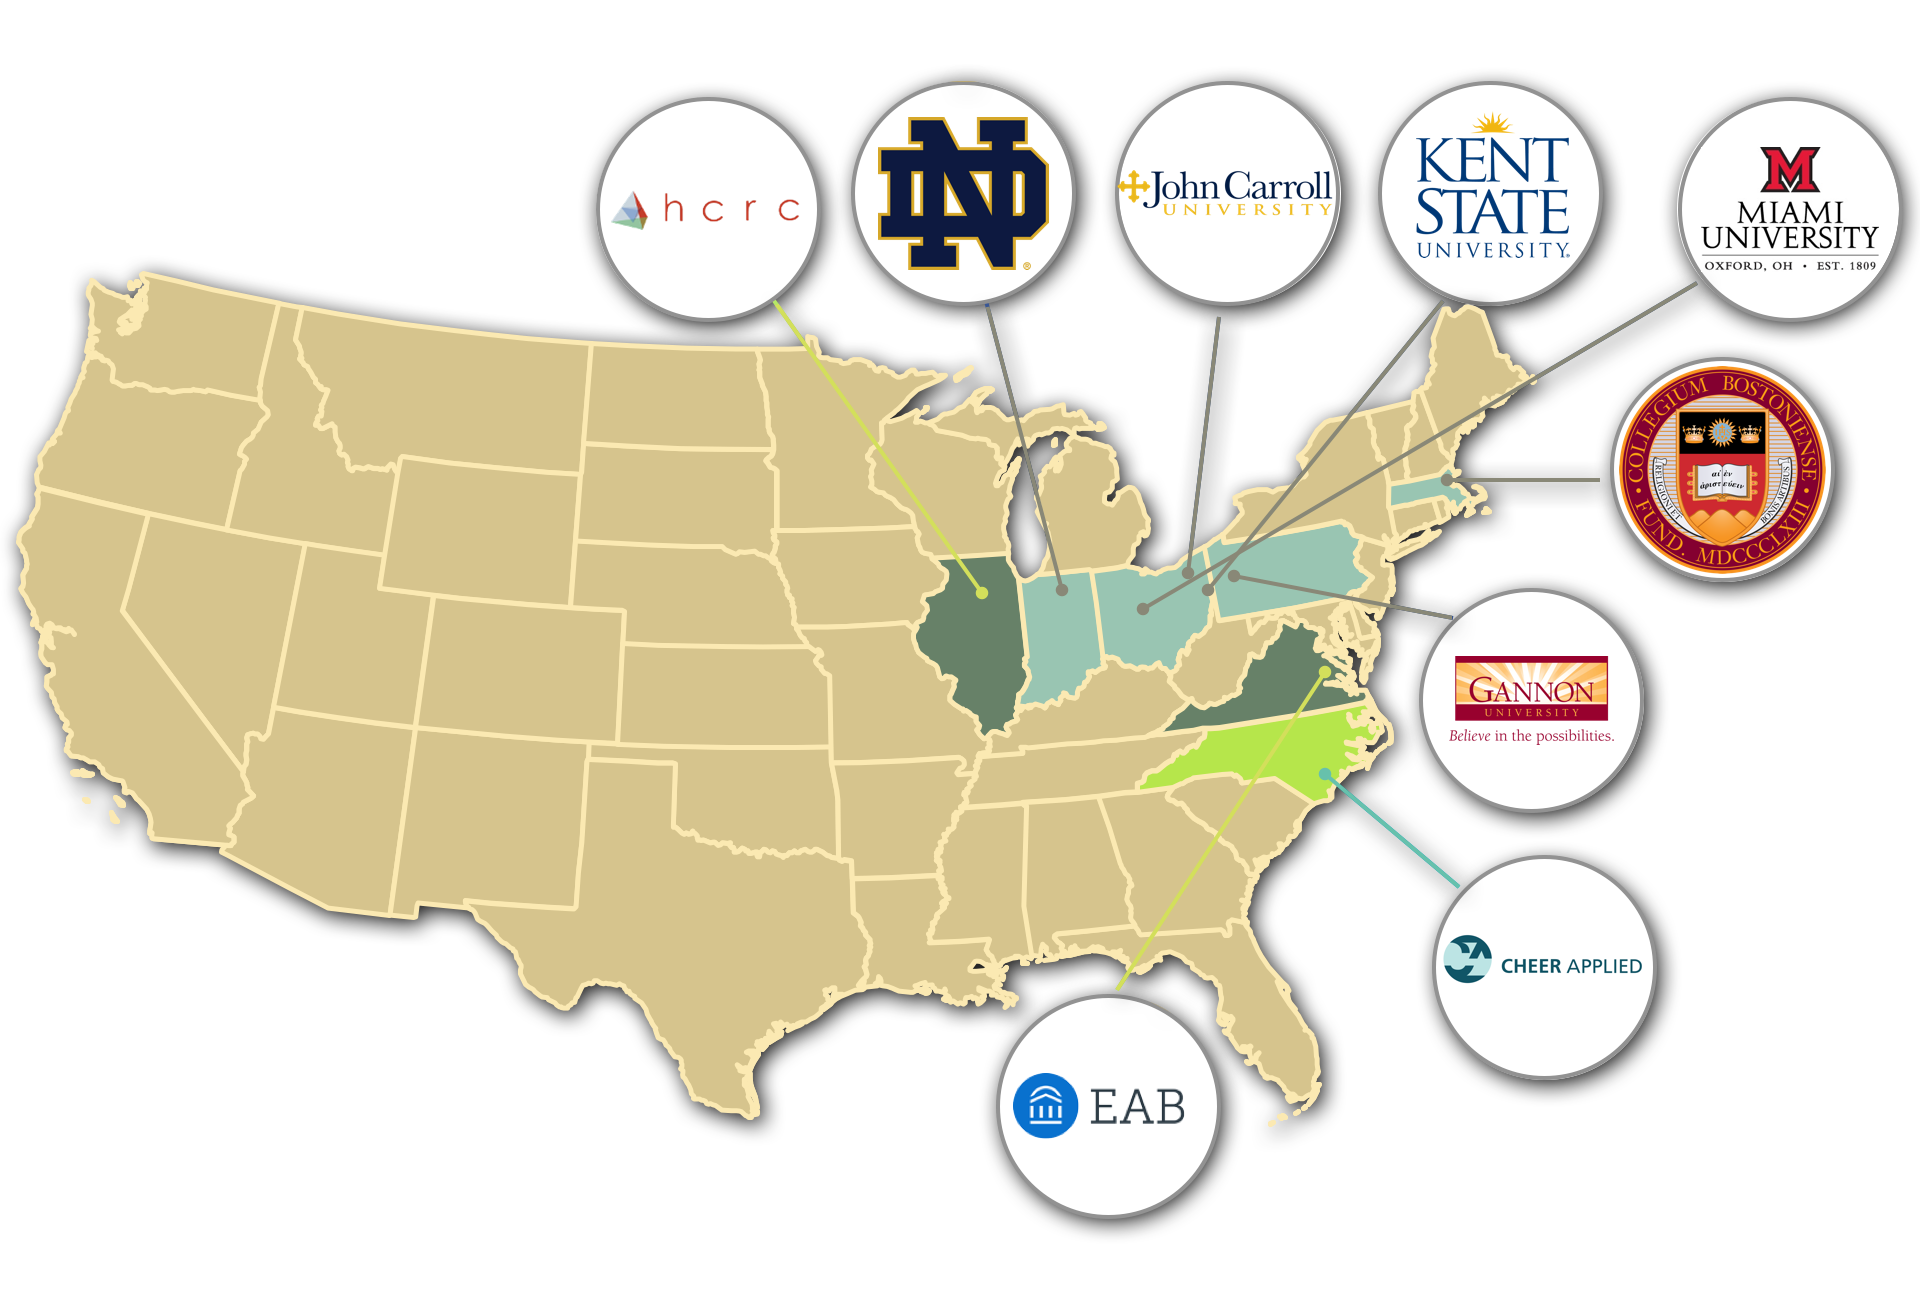 more about our work - GlyphEd™ was created as a joint partnership with the University of Notre Dame. Since then it has expanded to tackle Enrollment Management, Retention, Career Services, and curriculum use cases. GlyphEd™ is credited with helping students understand data up to twice as fast, and increasing a schools retention rate by 5 points saving them $2 million dollars.GO TO THE GLYPHED WEBSITE